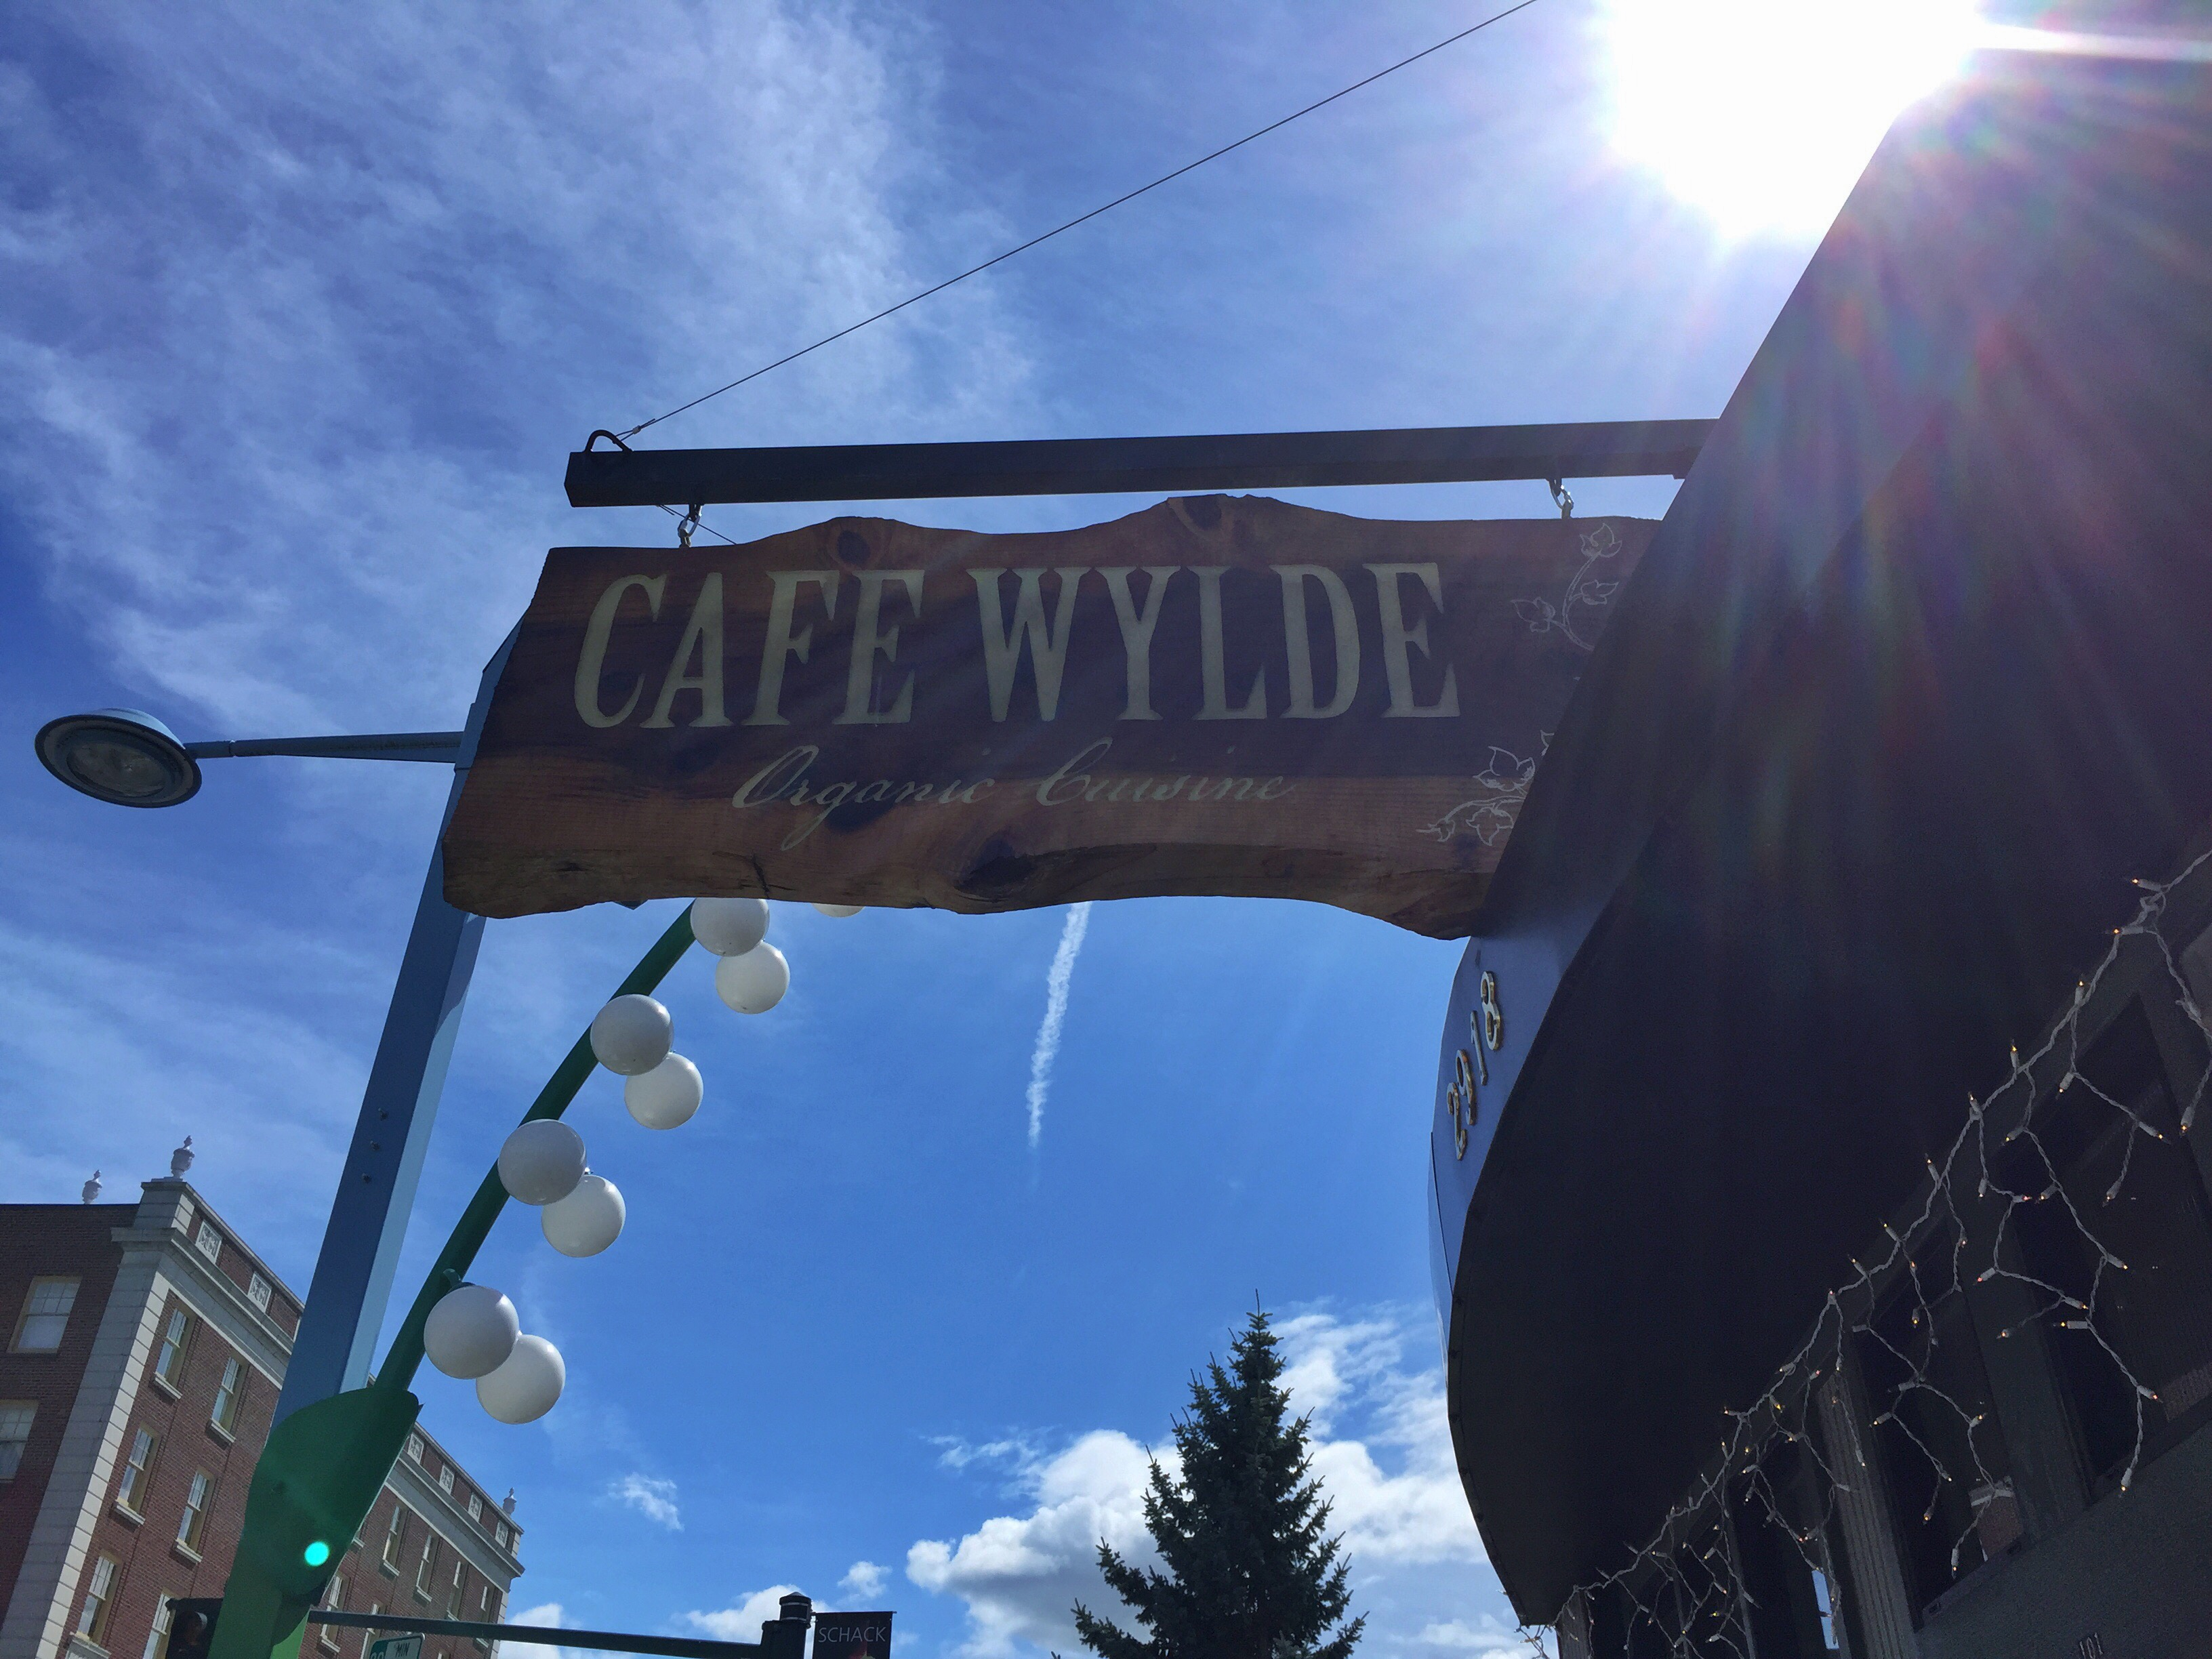 Cafe Wylde sign